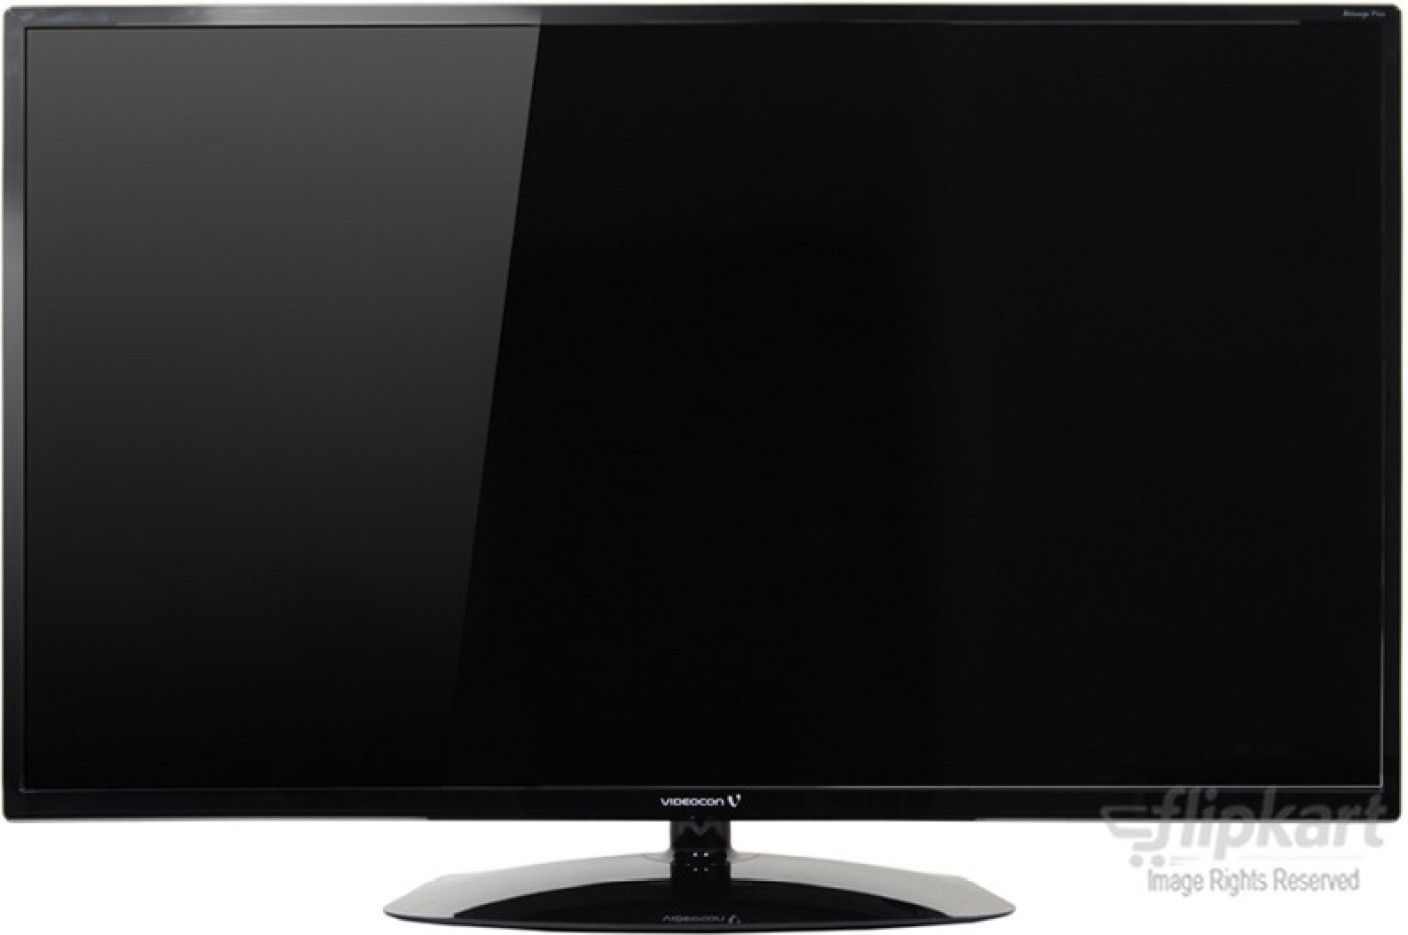 videocon 127 cm 50 inch full hd led tv online at best prices in india. Black Bedroom Furniture Sets. Home Design Ideas